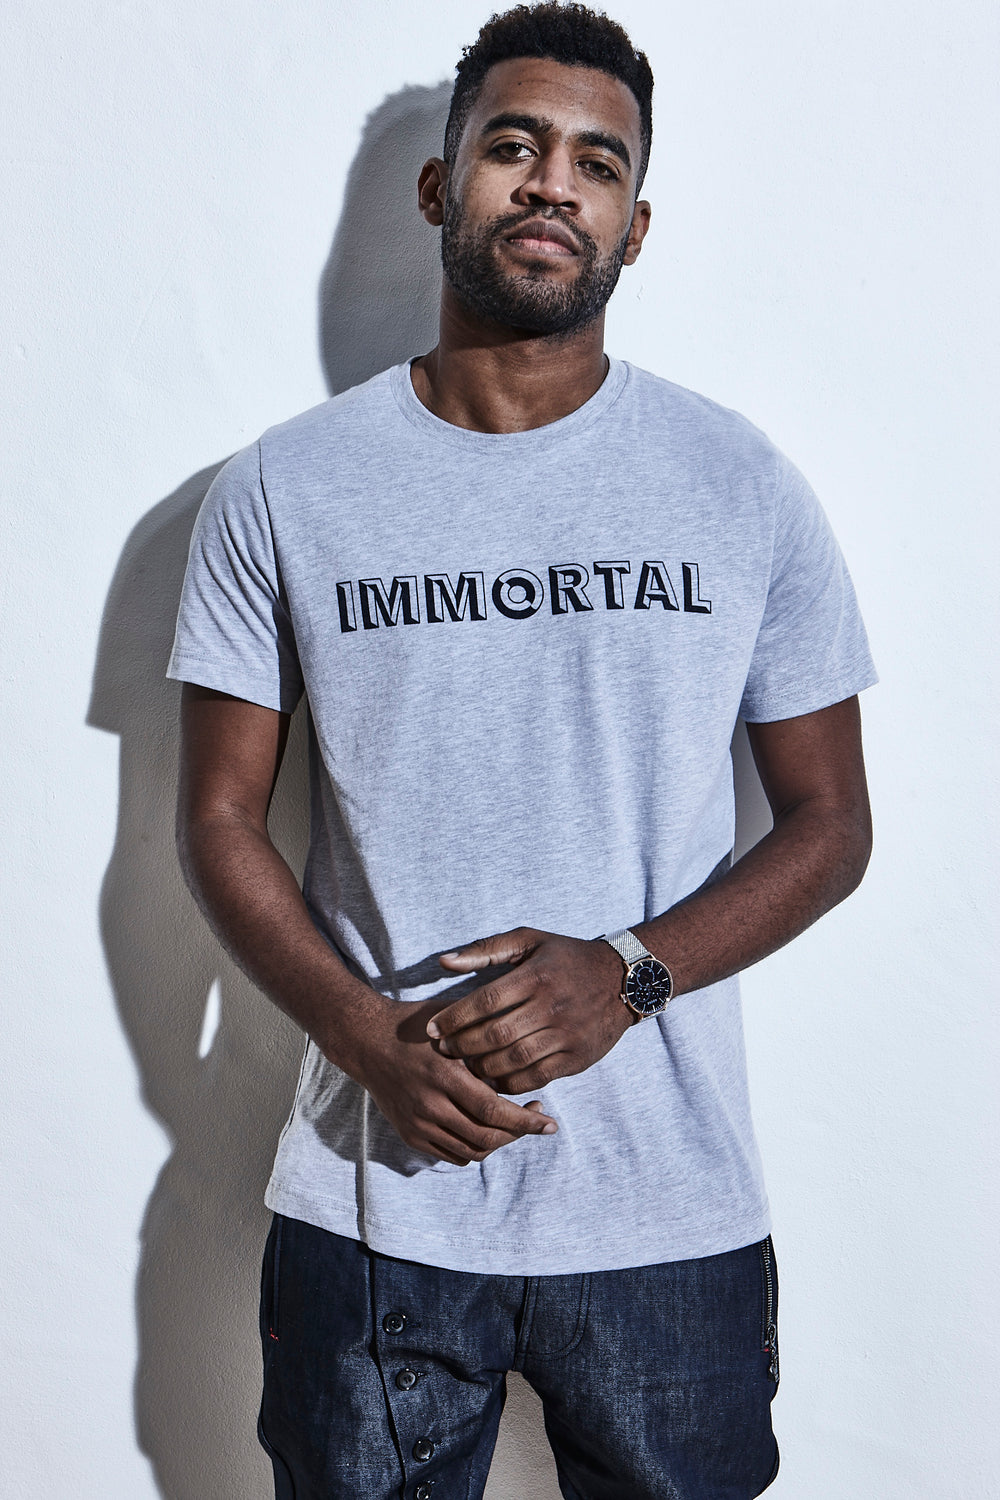 Elensa Race to Immortality T-Shirt - Immortal - Grey Marl